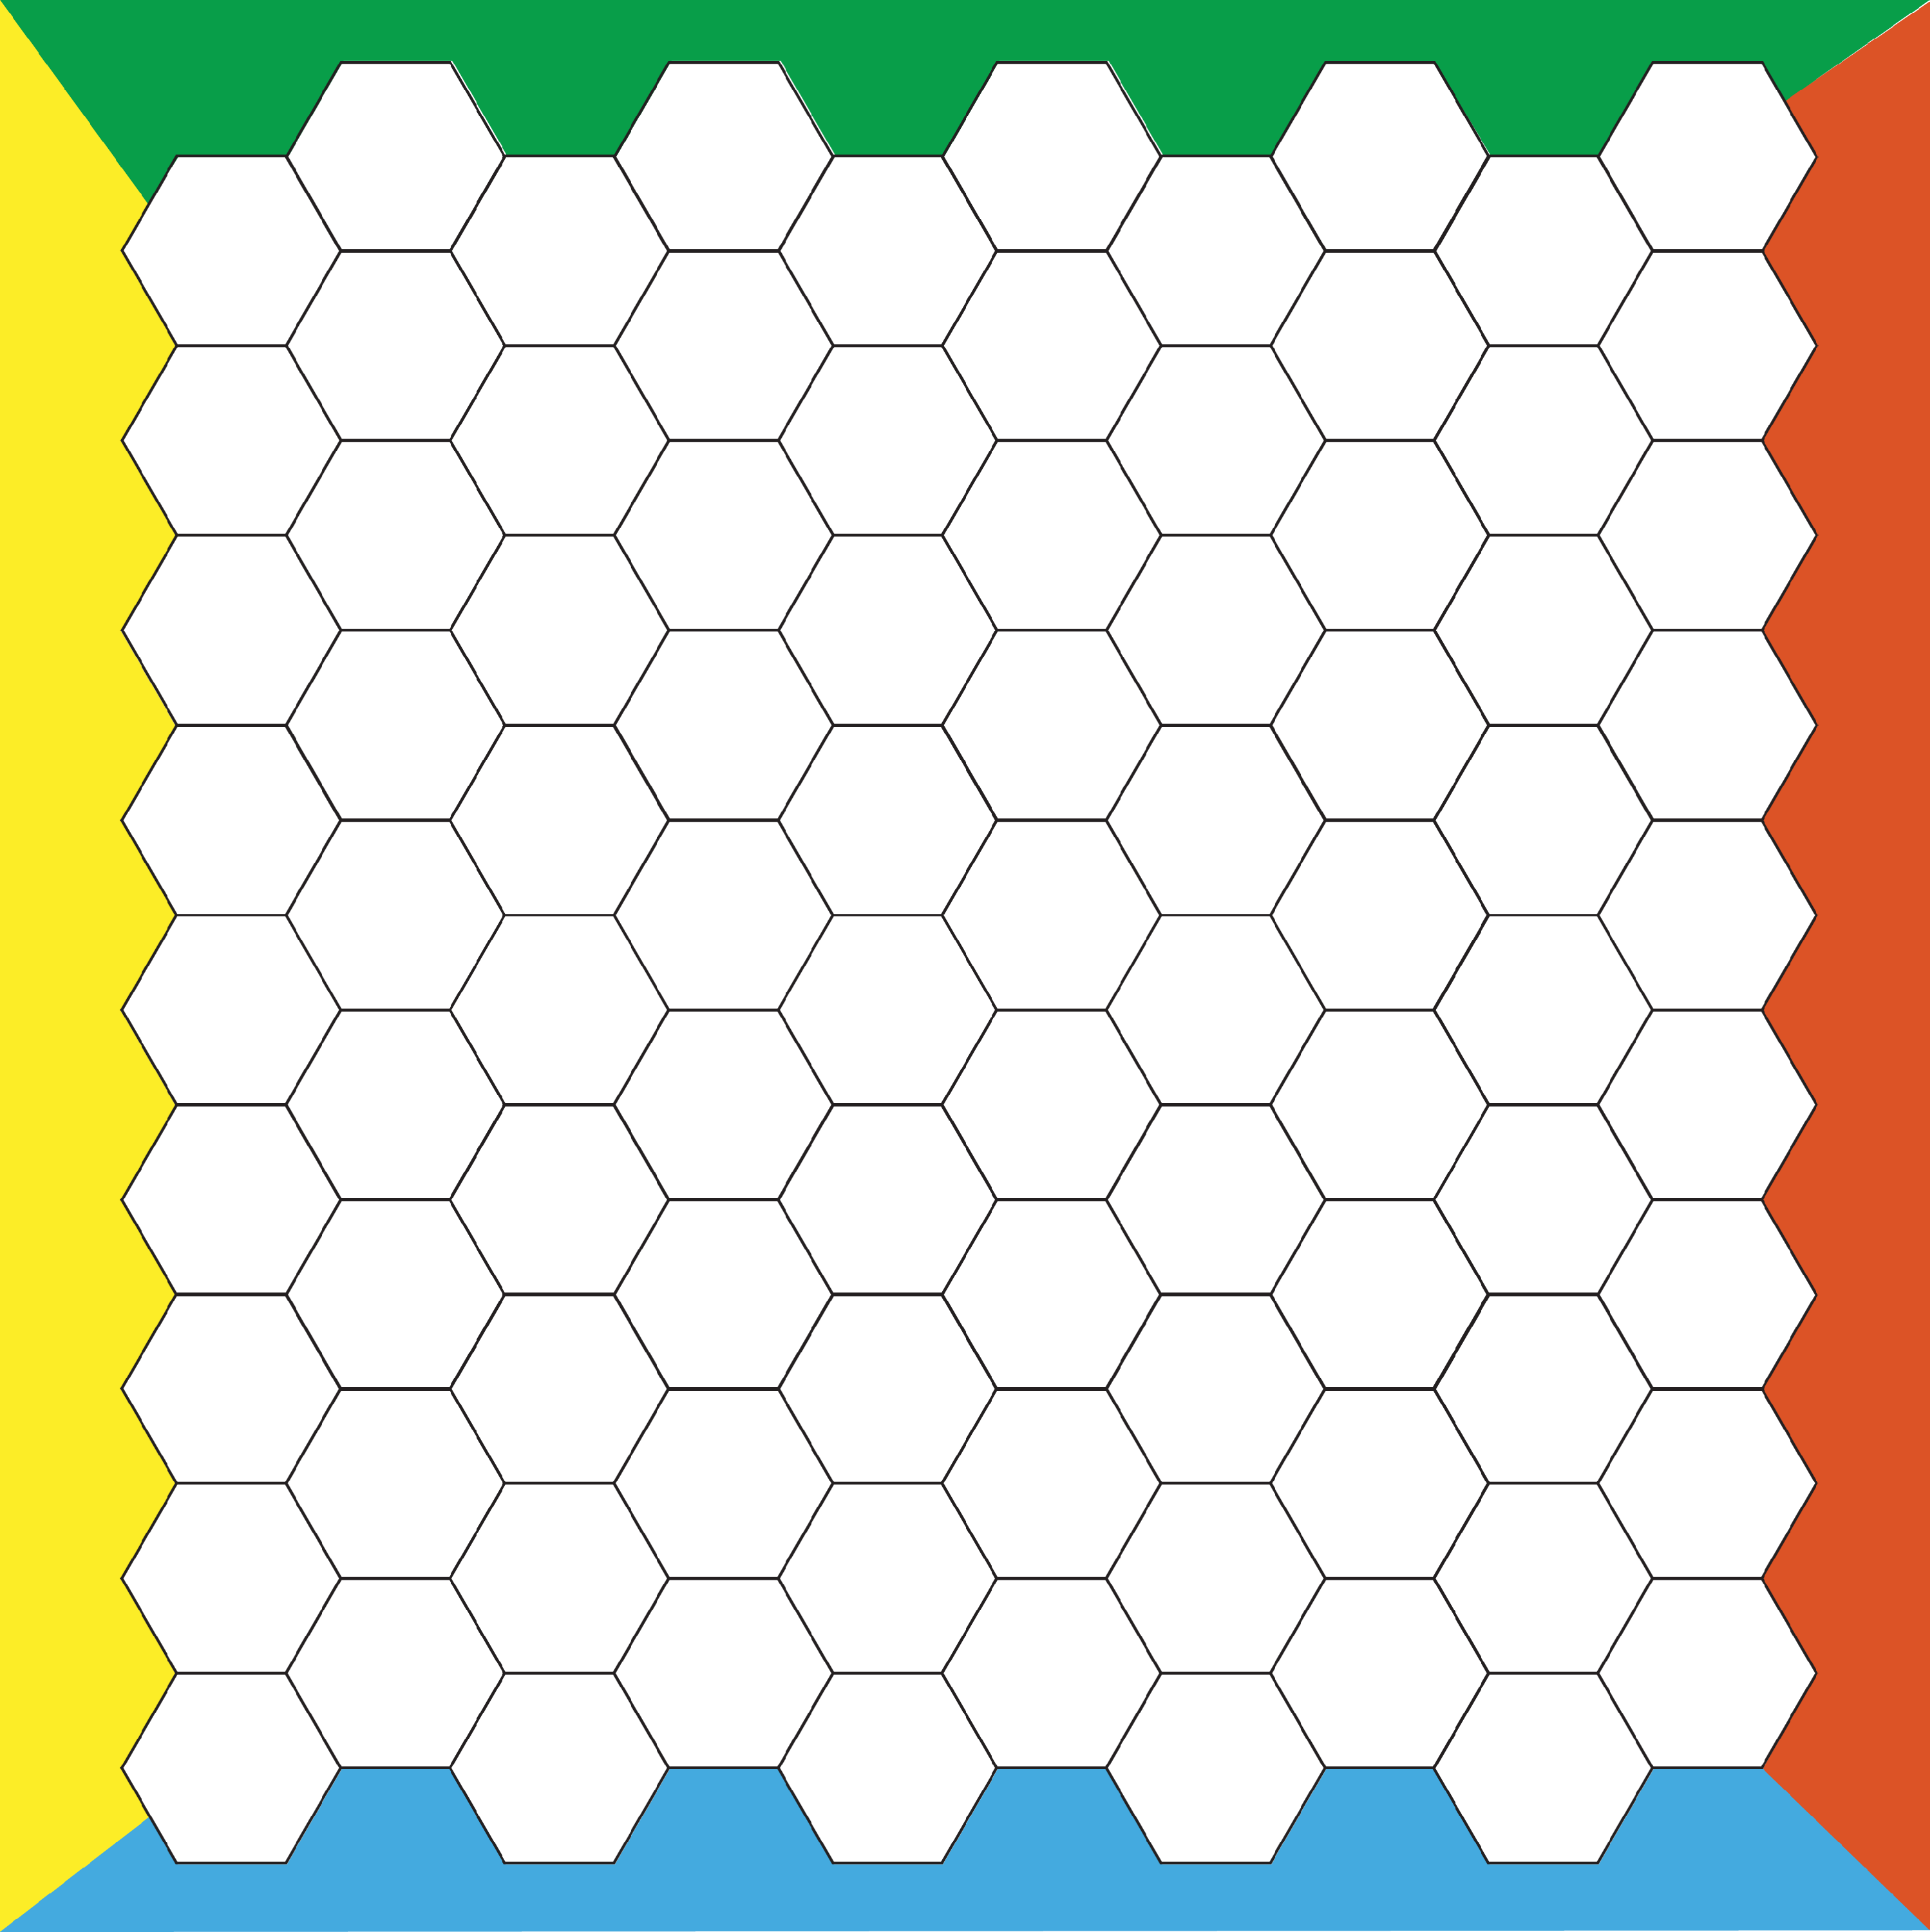 Hex grid png. Utility templates the game